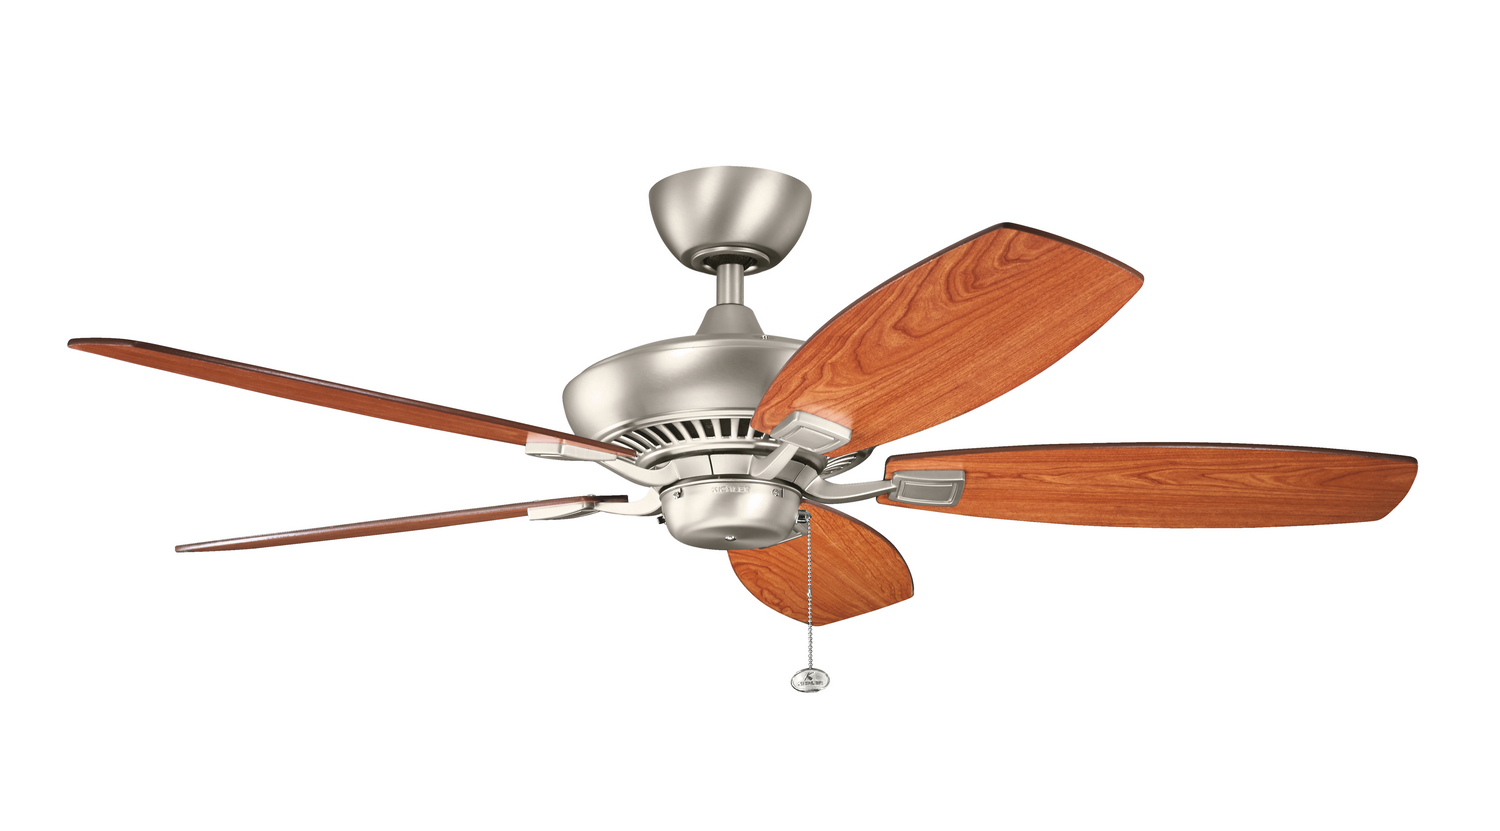 52 inchCeiling Fan from the Canfield collection by Kichler 300117NI